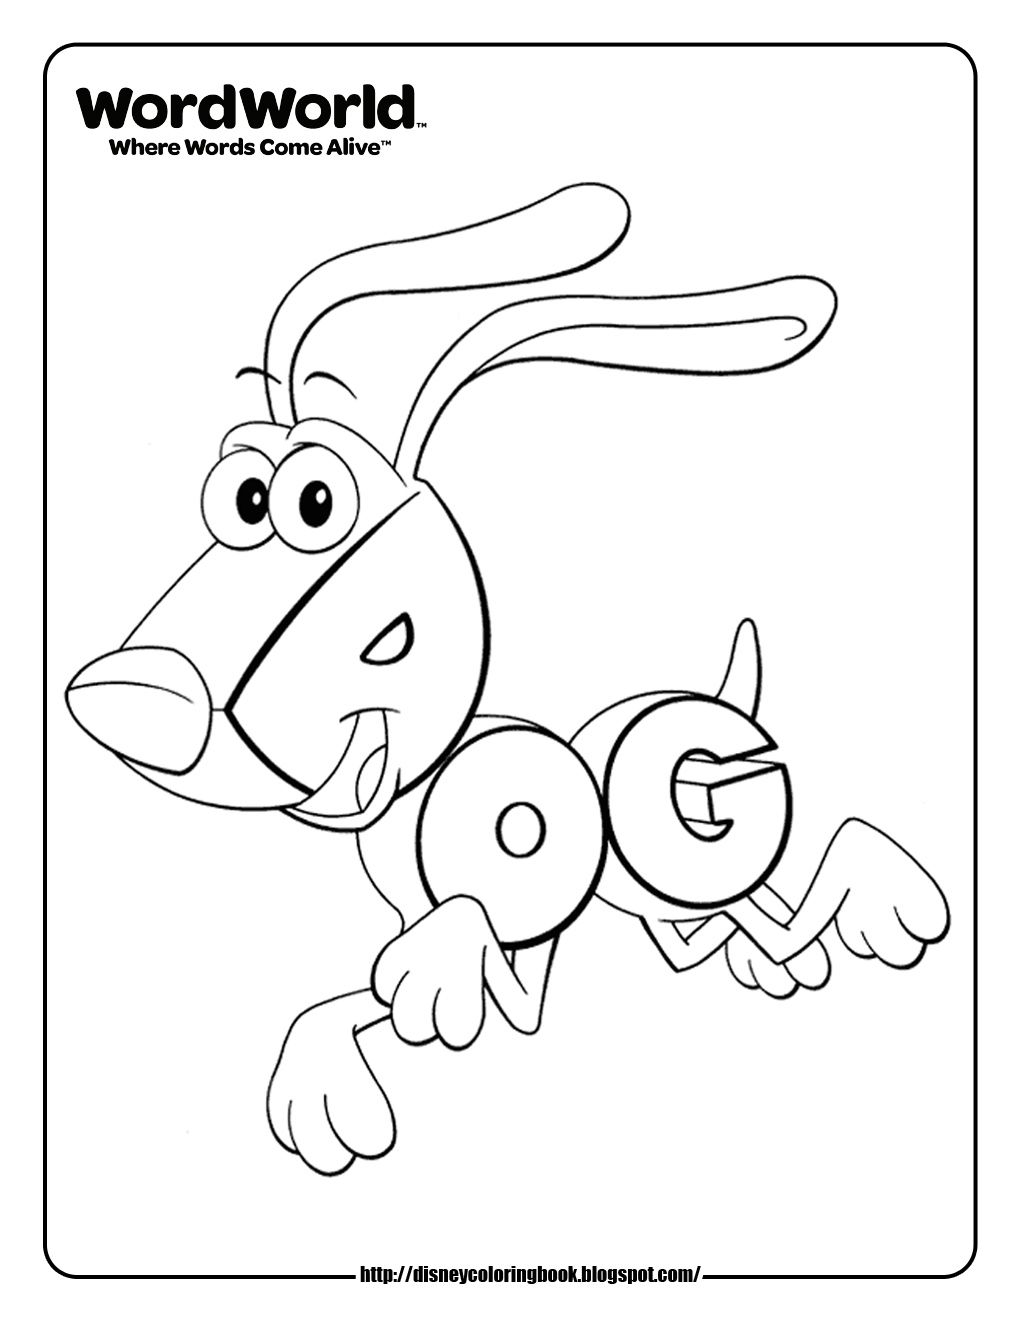 Coloring worksheets phonics - Word World Dog Coloring Pages I Know A Three Year Old Who Will Love This